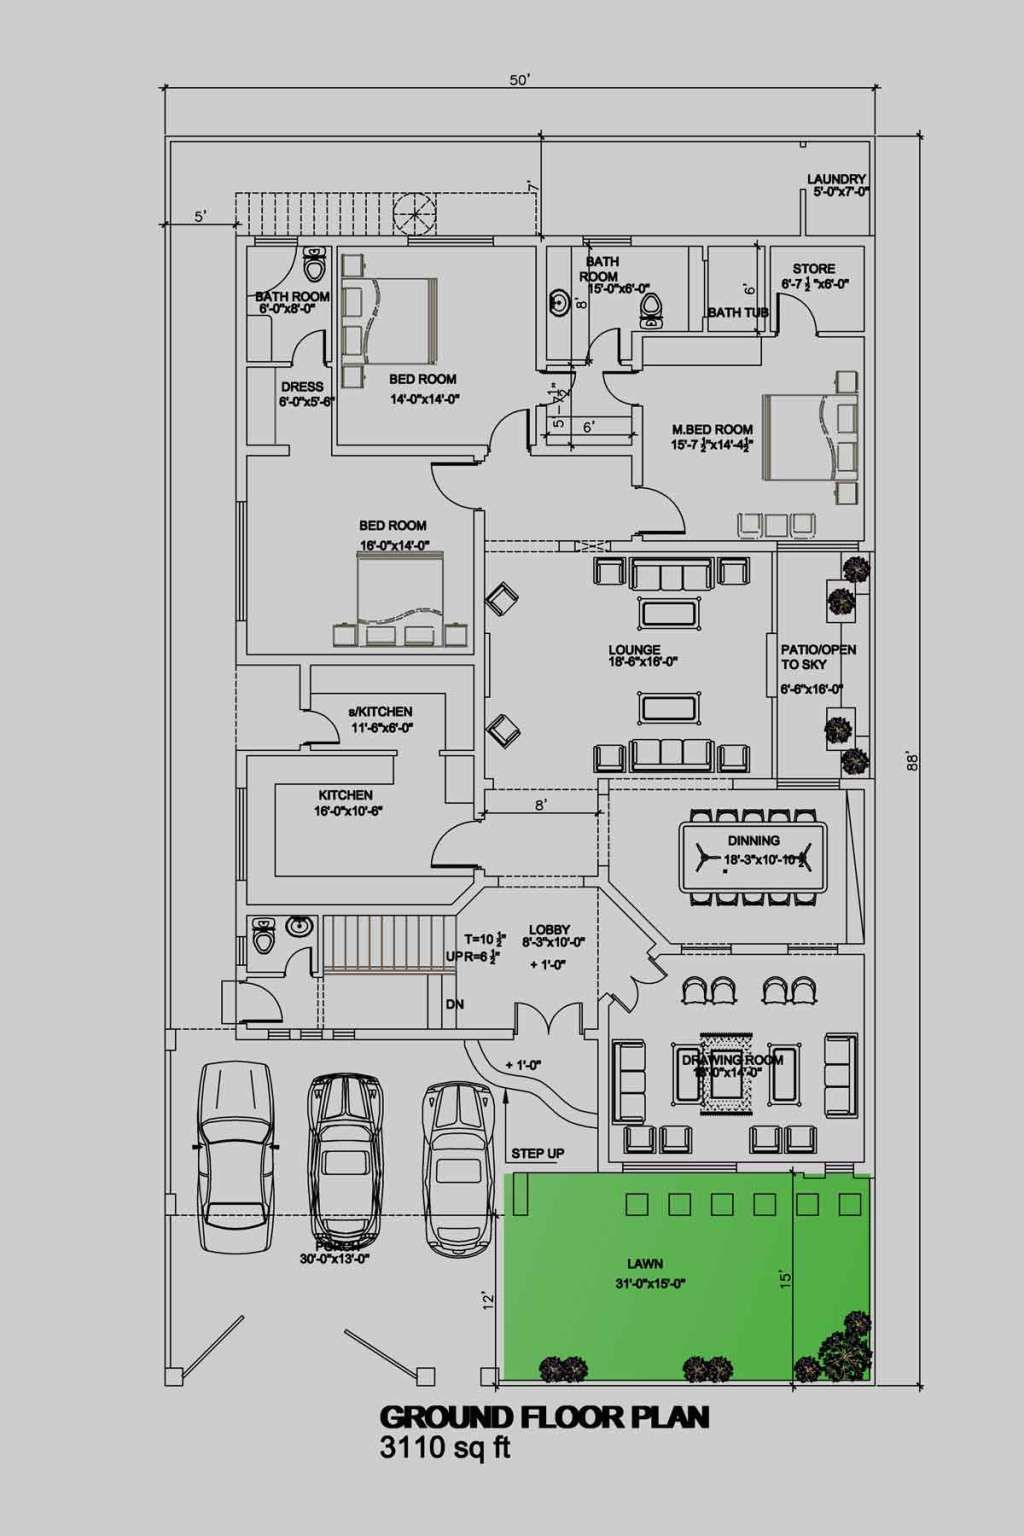 House floor plan by design estate kanal also map planing plans  rh in pinterest